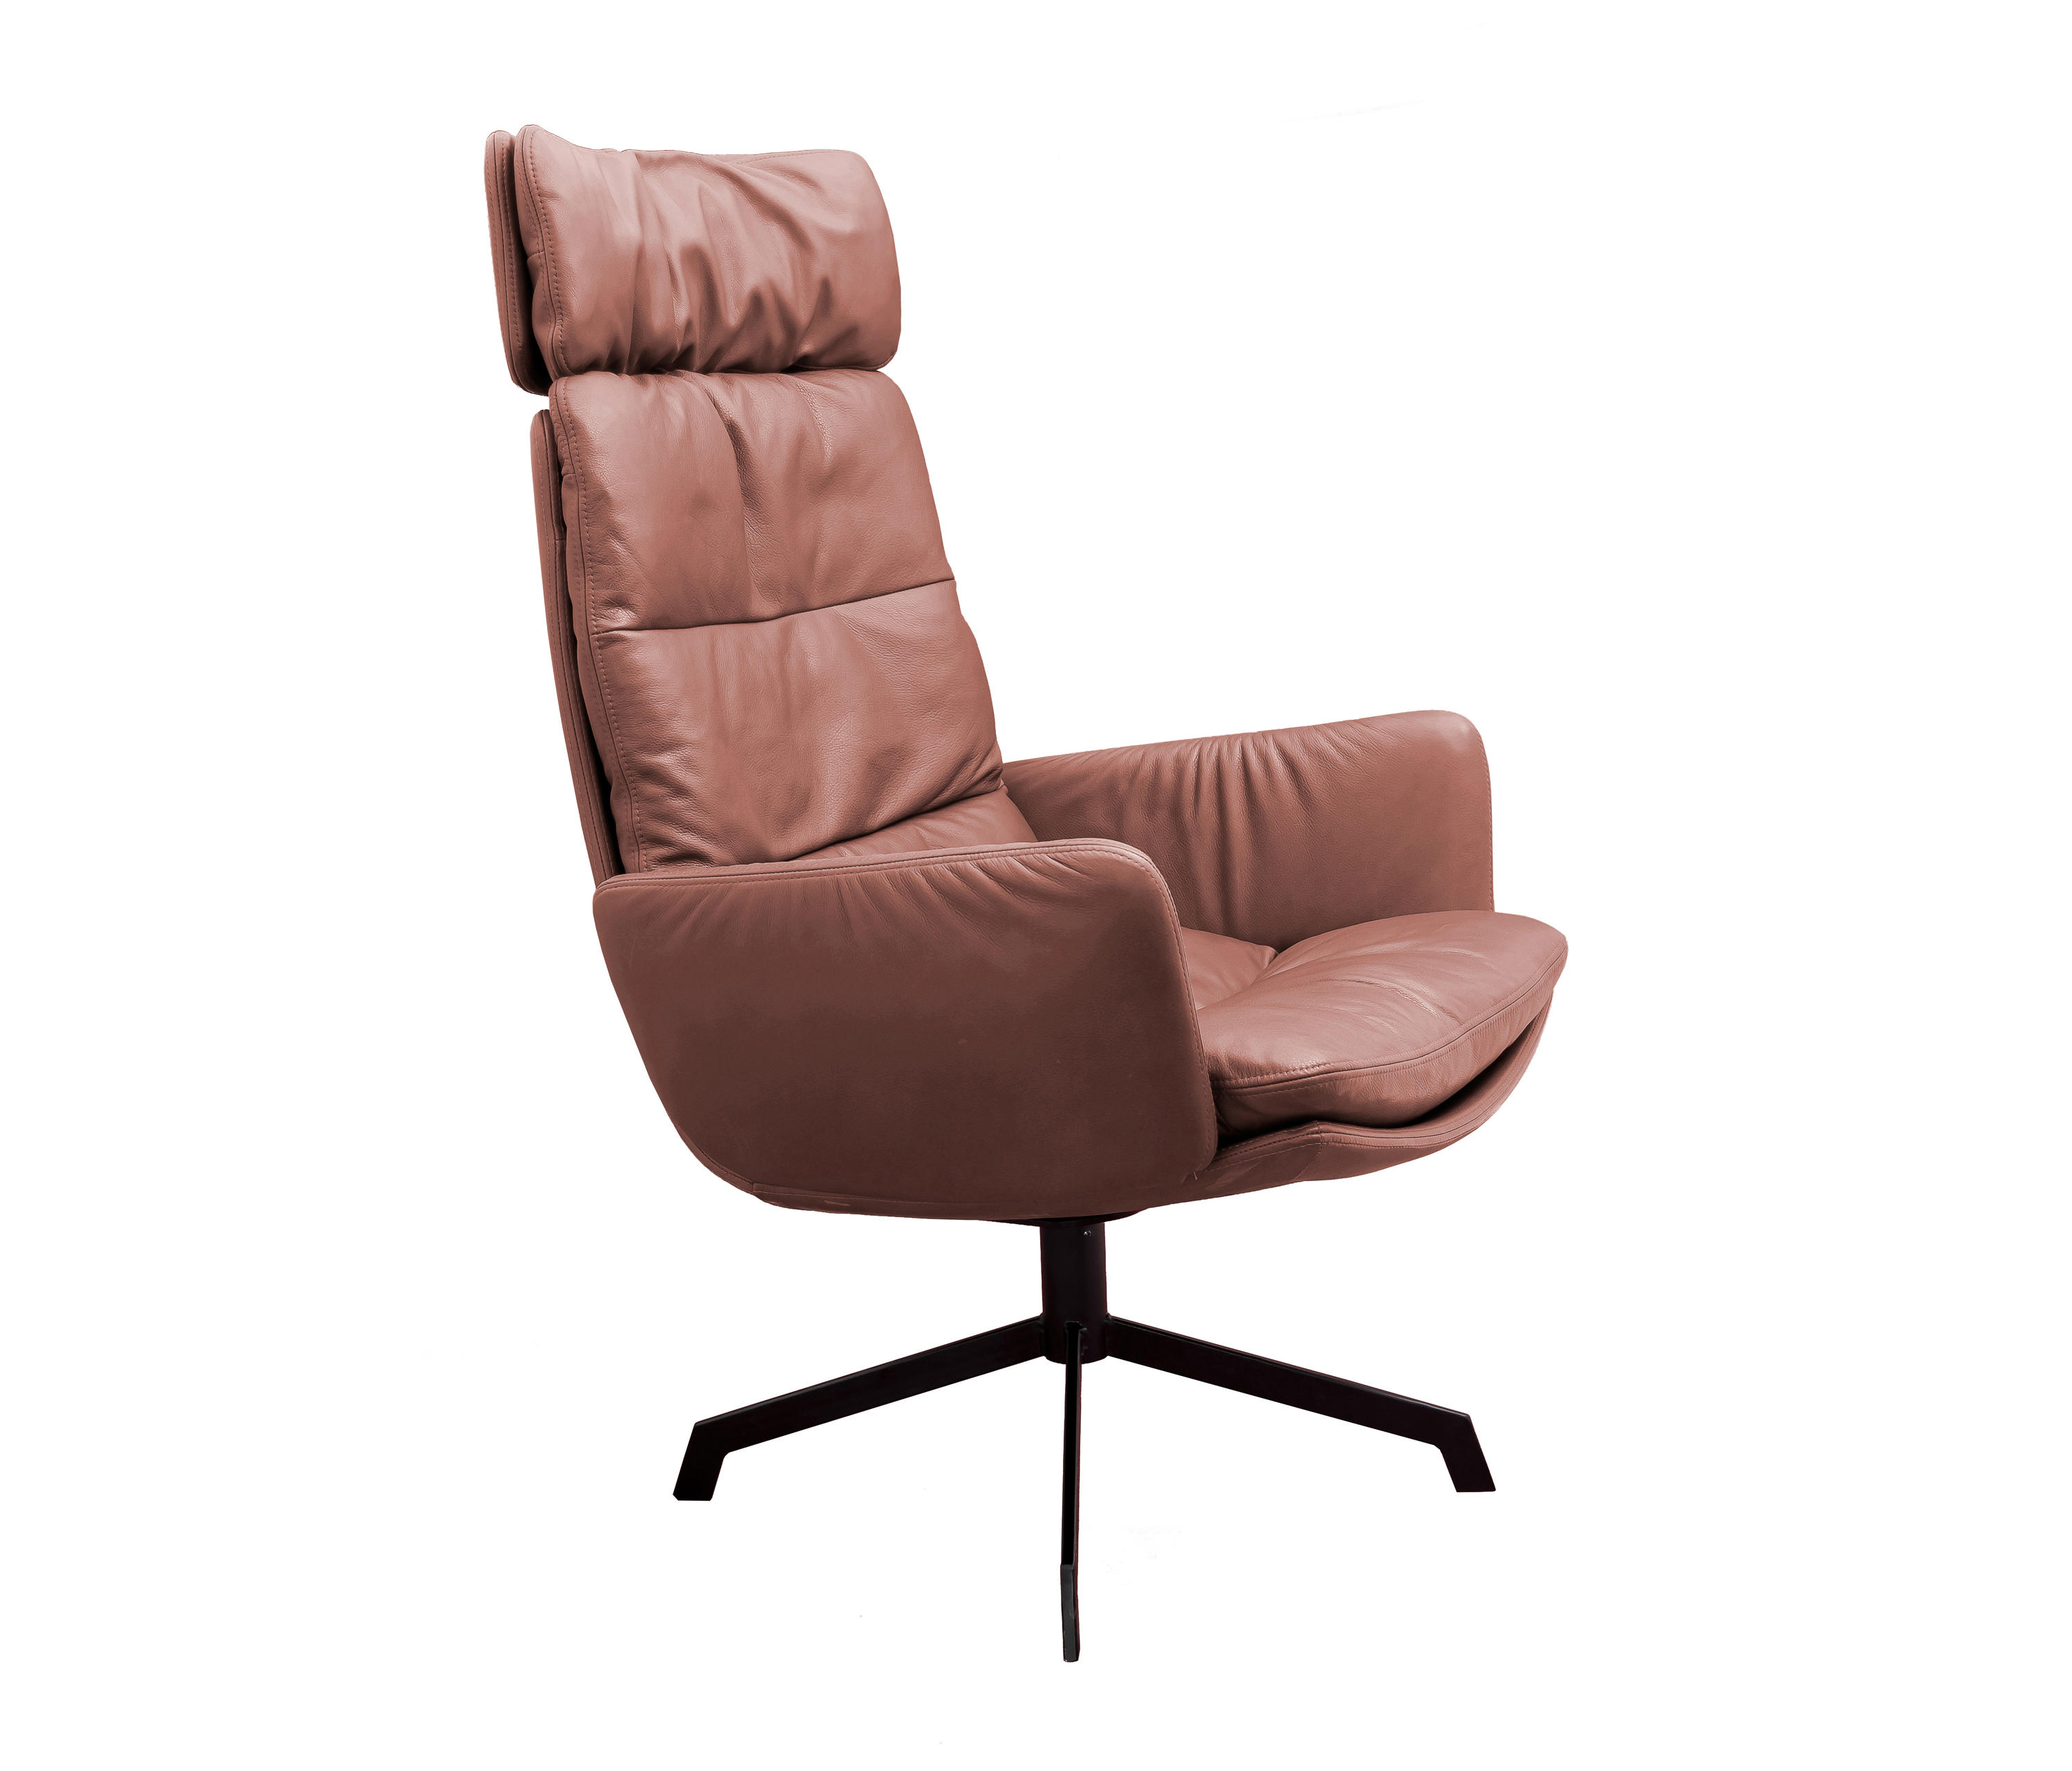 423 CAB LOUNGE Lounge chairs from Cassina